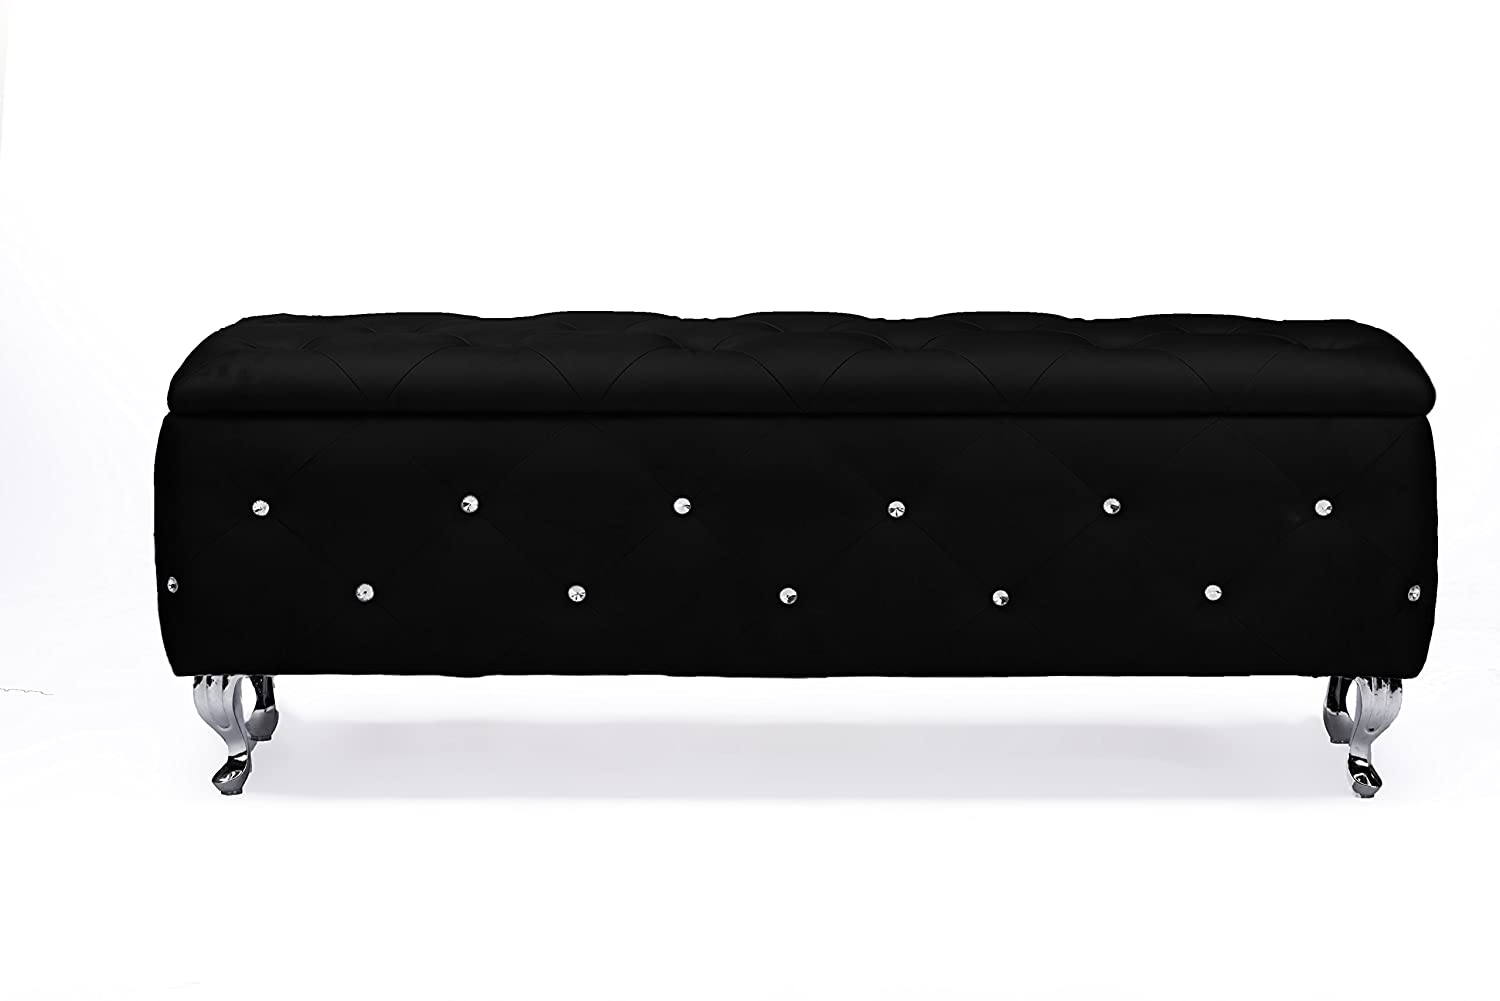 Exceptionnel Amazon.com: Baxton Studio Seine Wood And Black Leather Contemporary Storage  Ottoman, Black: Kitchen U0026 Dining